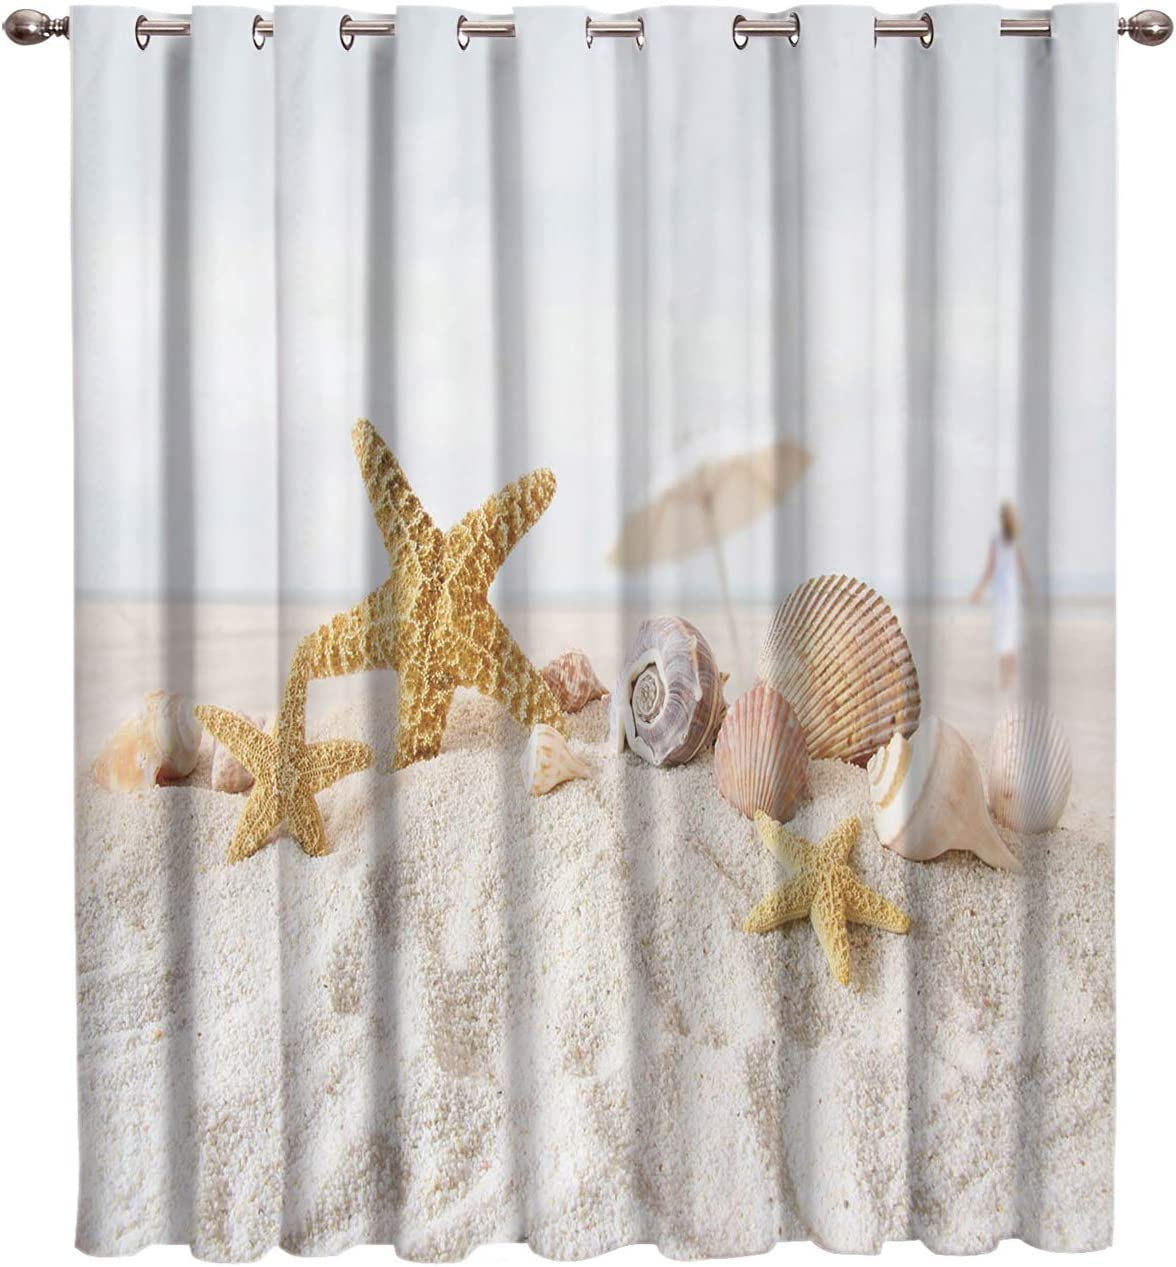 Cloud Dream Home Blackout Curtains Starfish Seashell Darkening Blackout Window-Treatment-Panels for Bedroom Beach Theme Draperies Window Curtain 1 Pieces, 52 W x 63 L